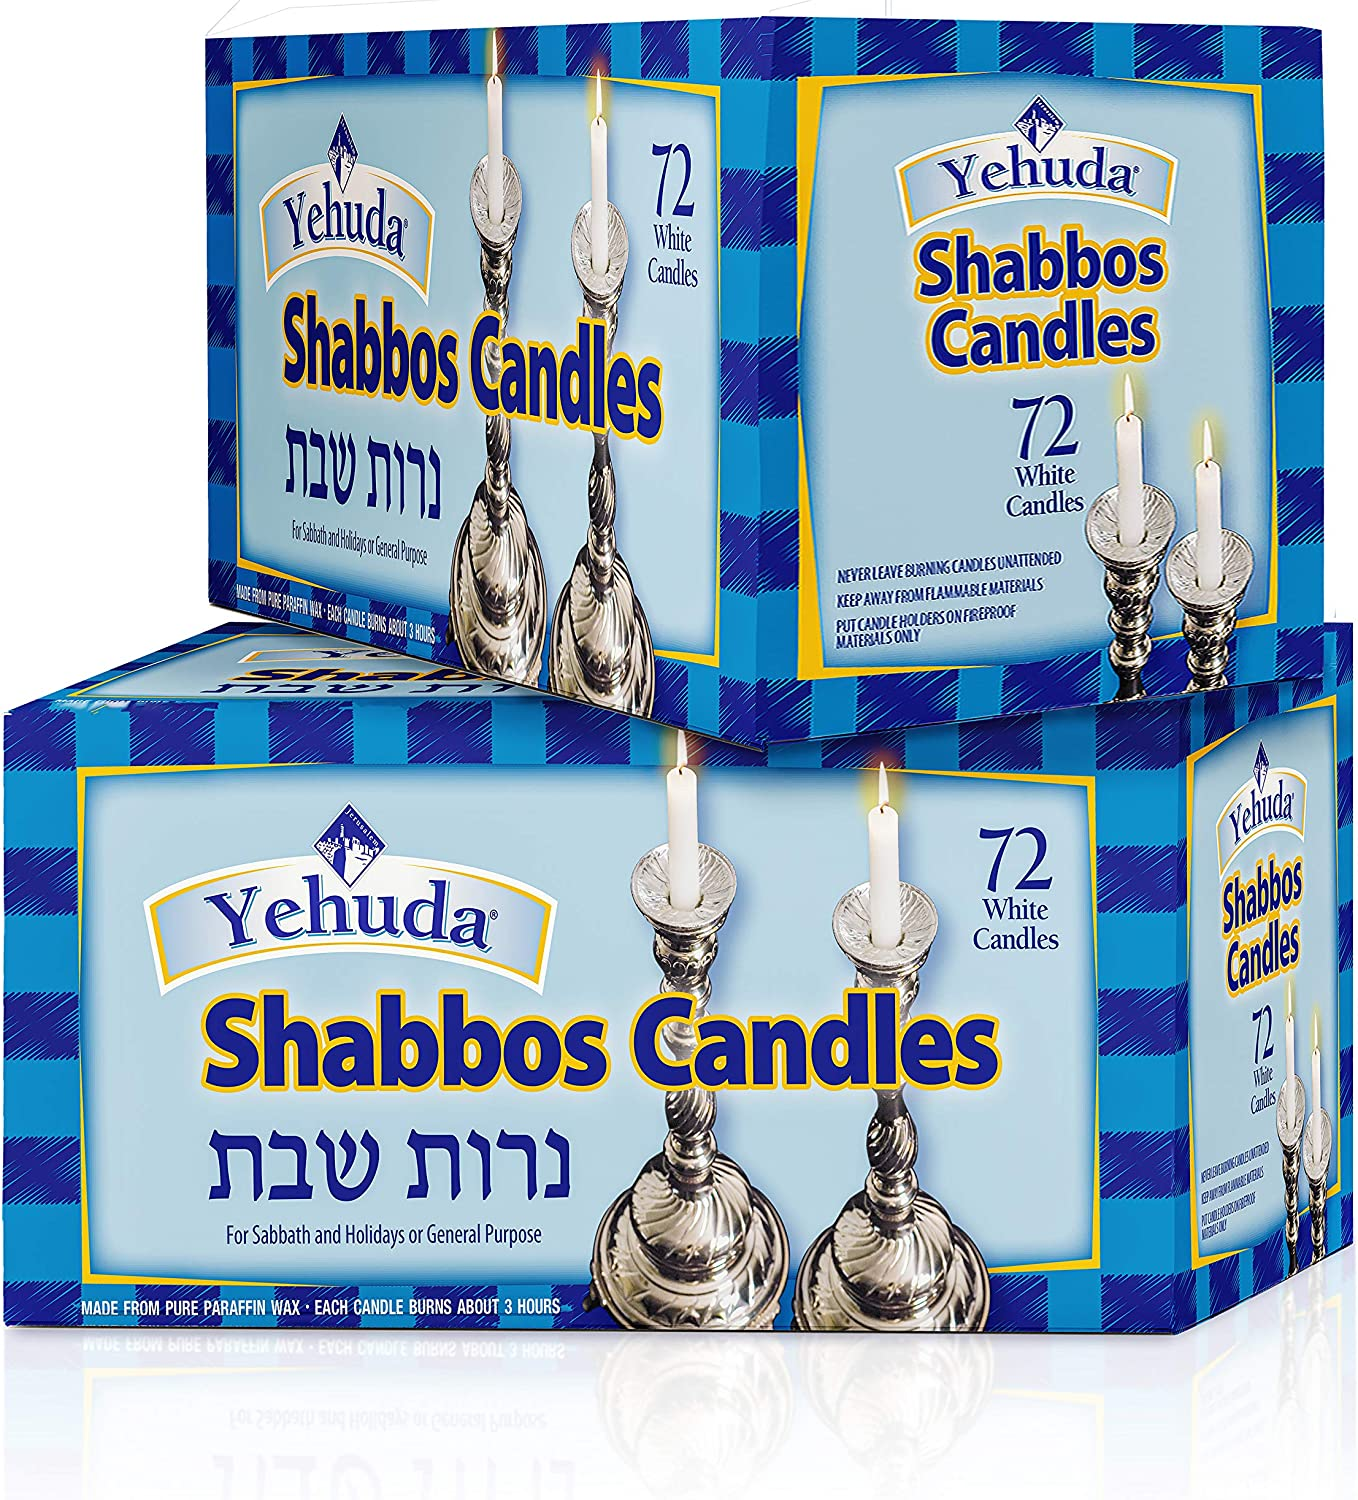 Yehuda 3 Hour White Shabbos Candles, 72 ct (2 Pack) Traditional Shabbat Candles